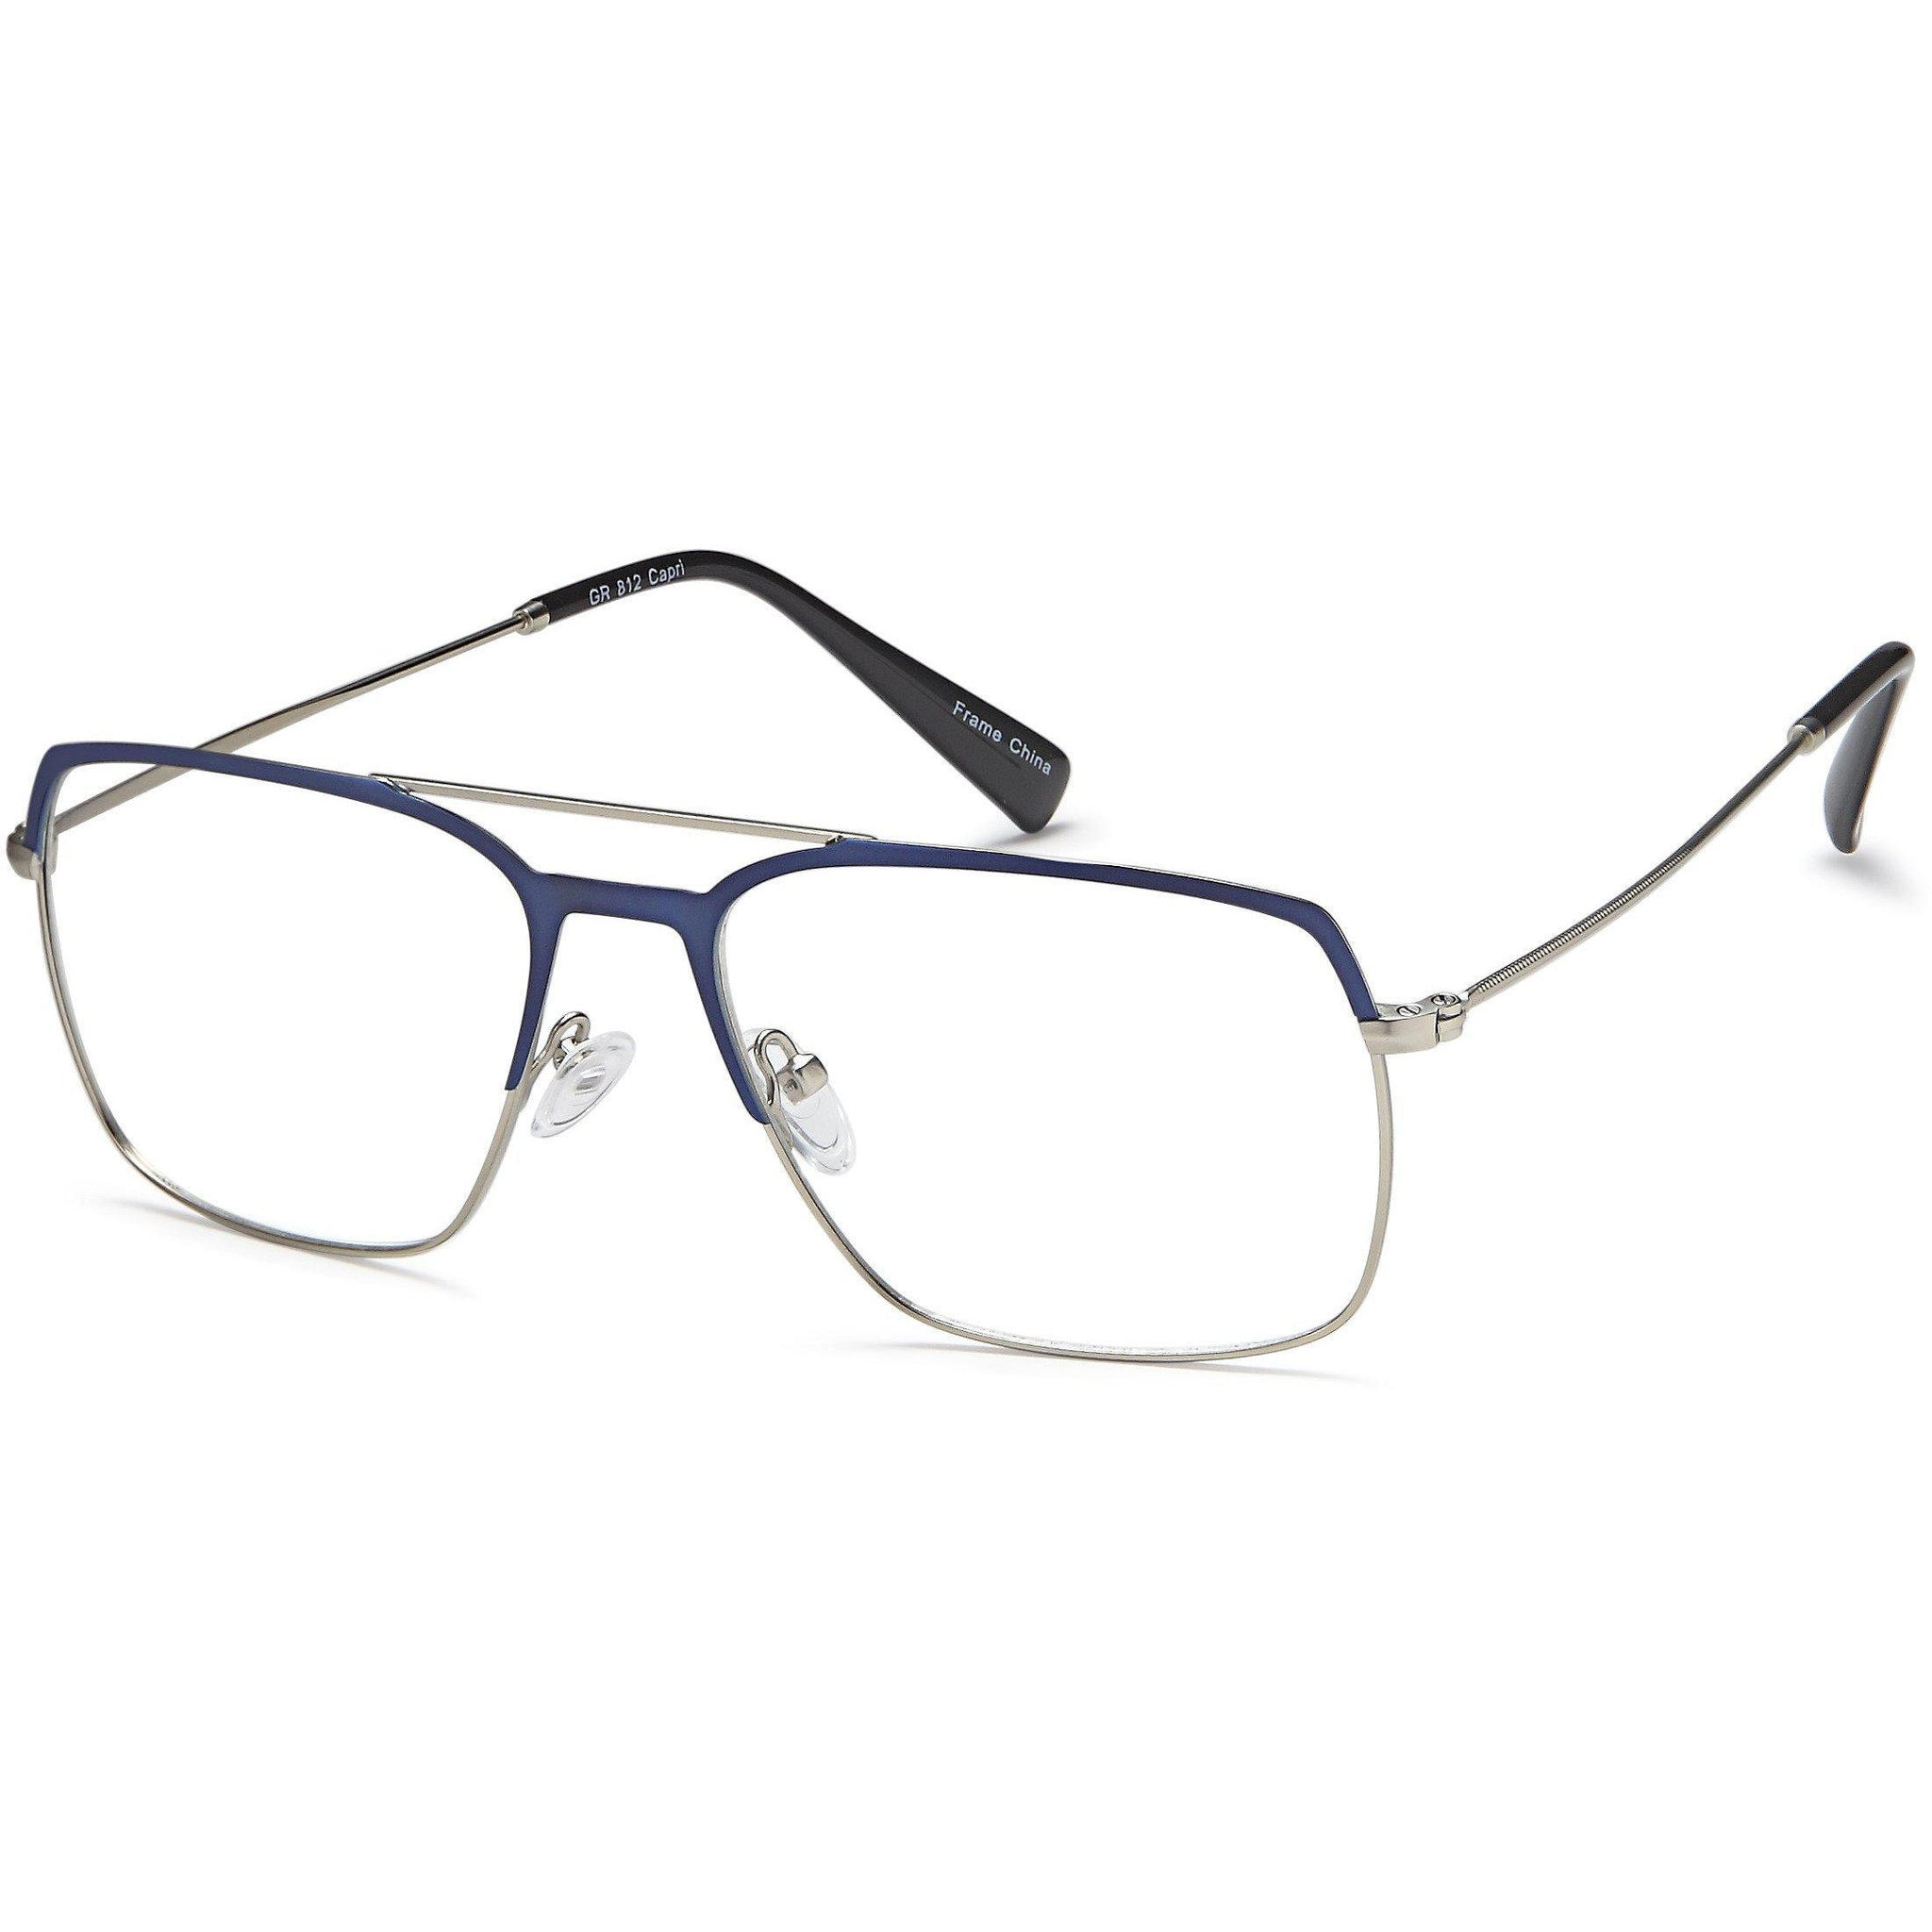 SizeUp Prescription Glasses GR 812 Eyeglasses Frames